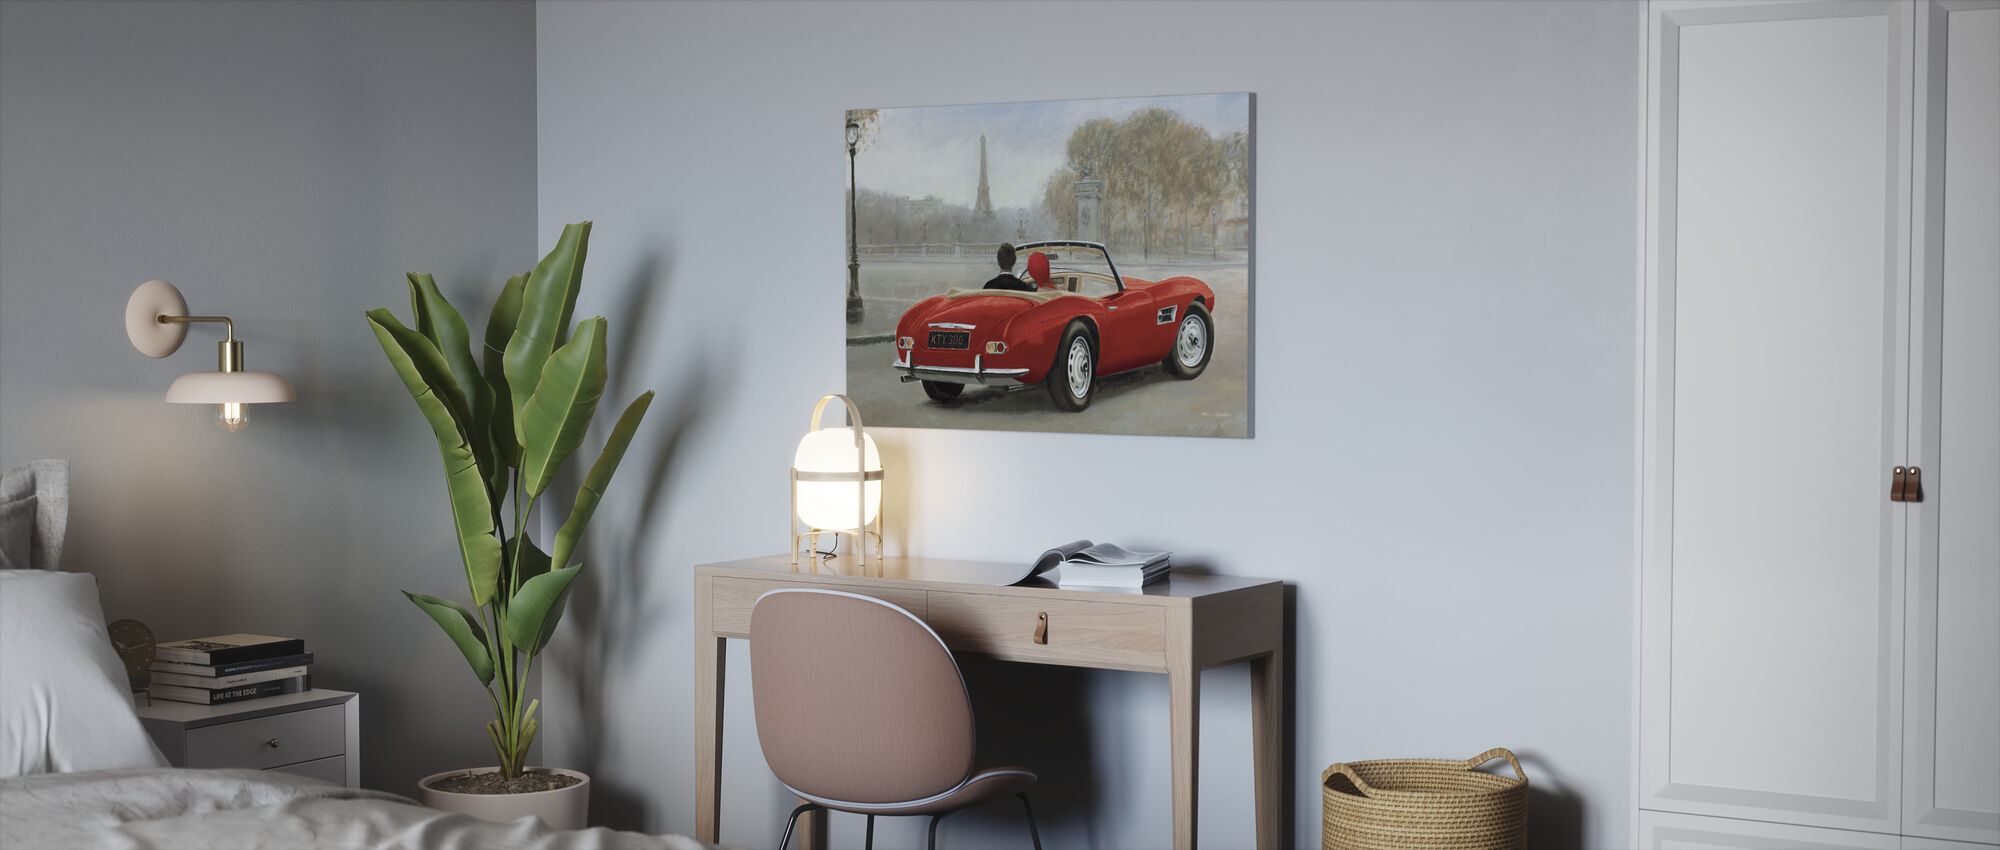 A ride in Paris III Red Car - Canvas print - Office